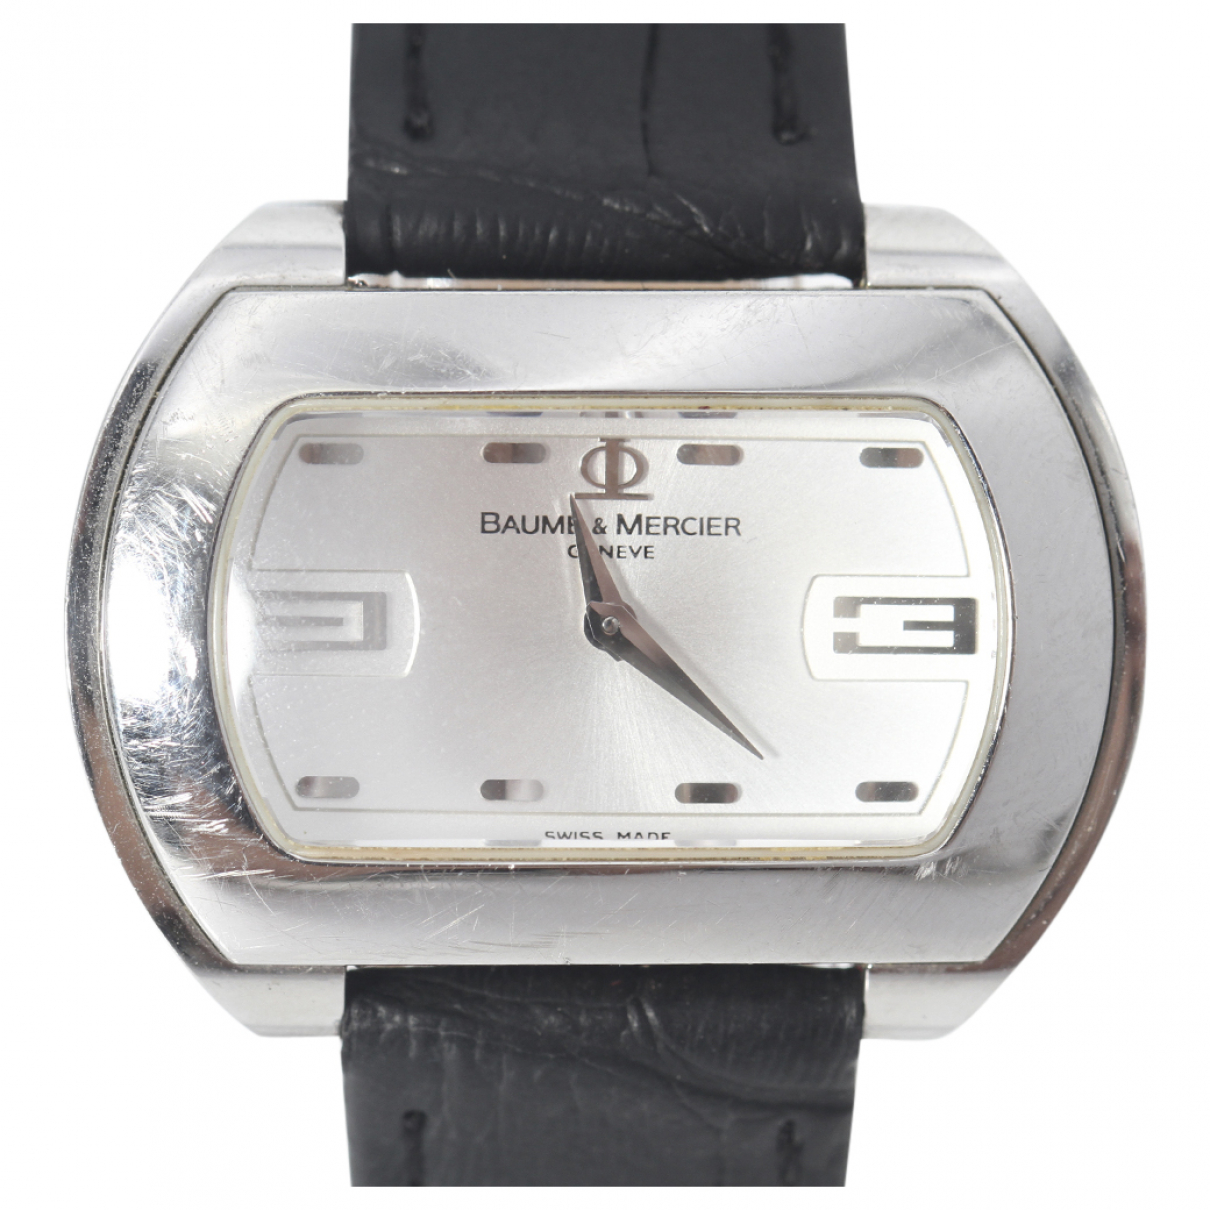 Baume Et Mercier N Steel watch for Women N